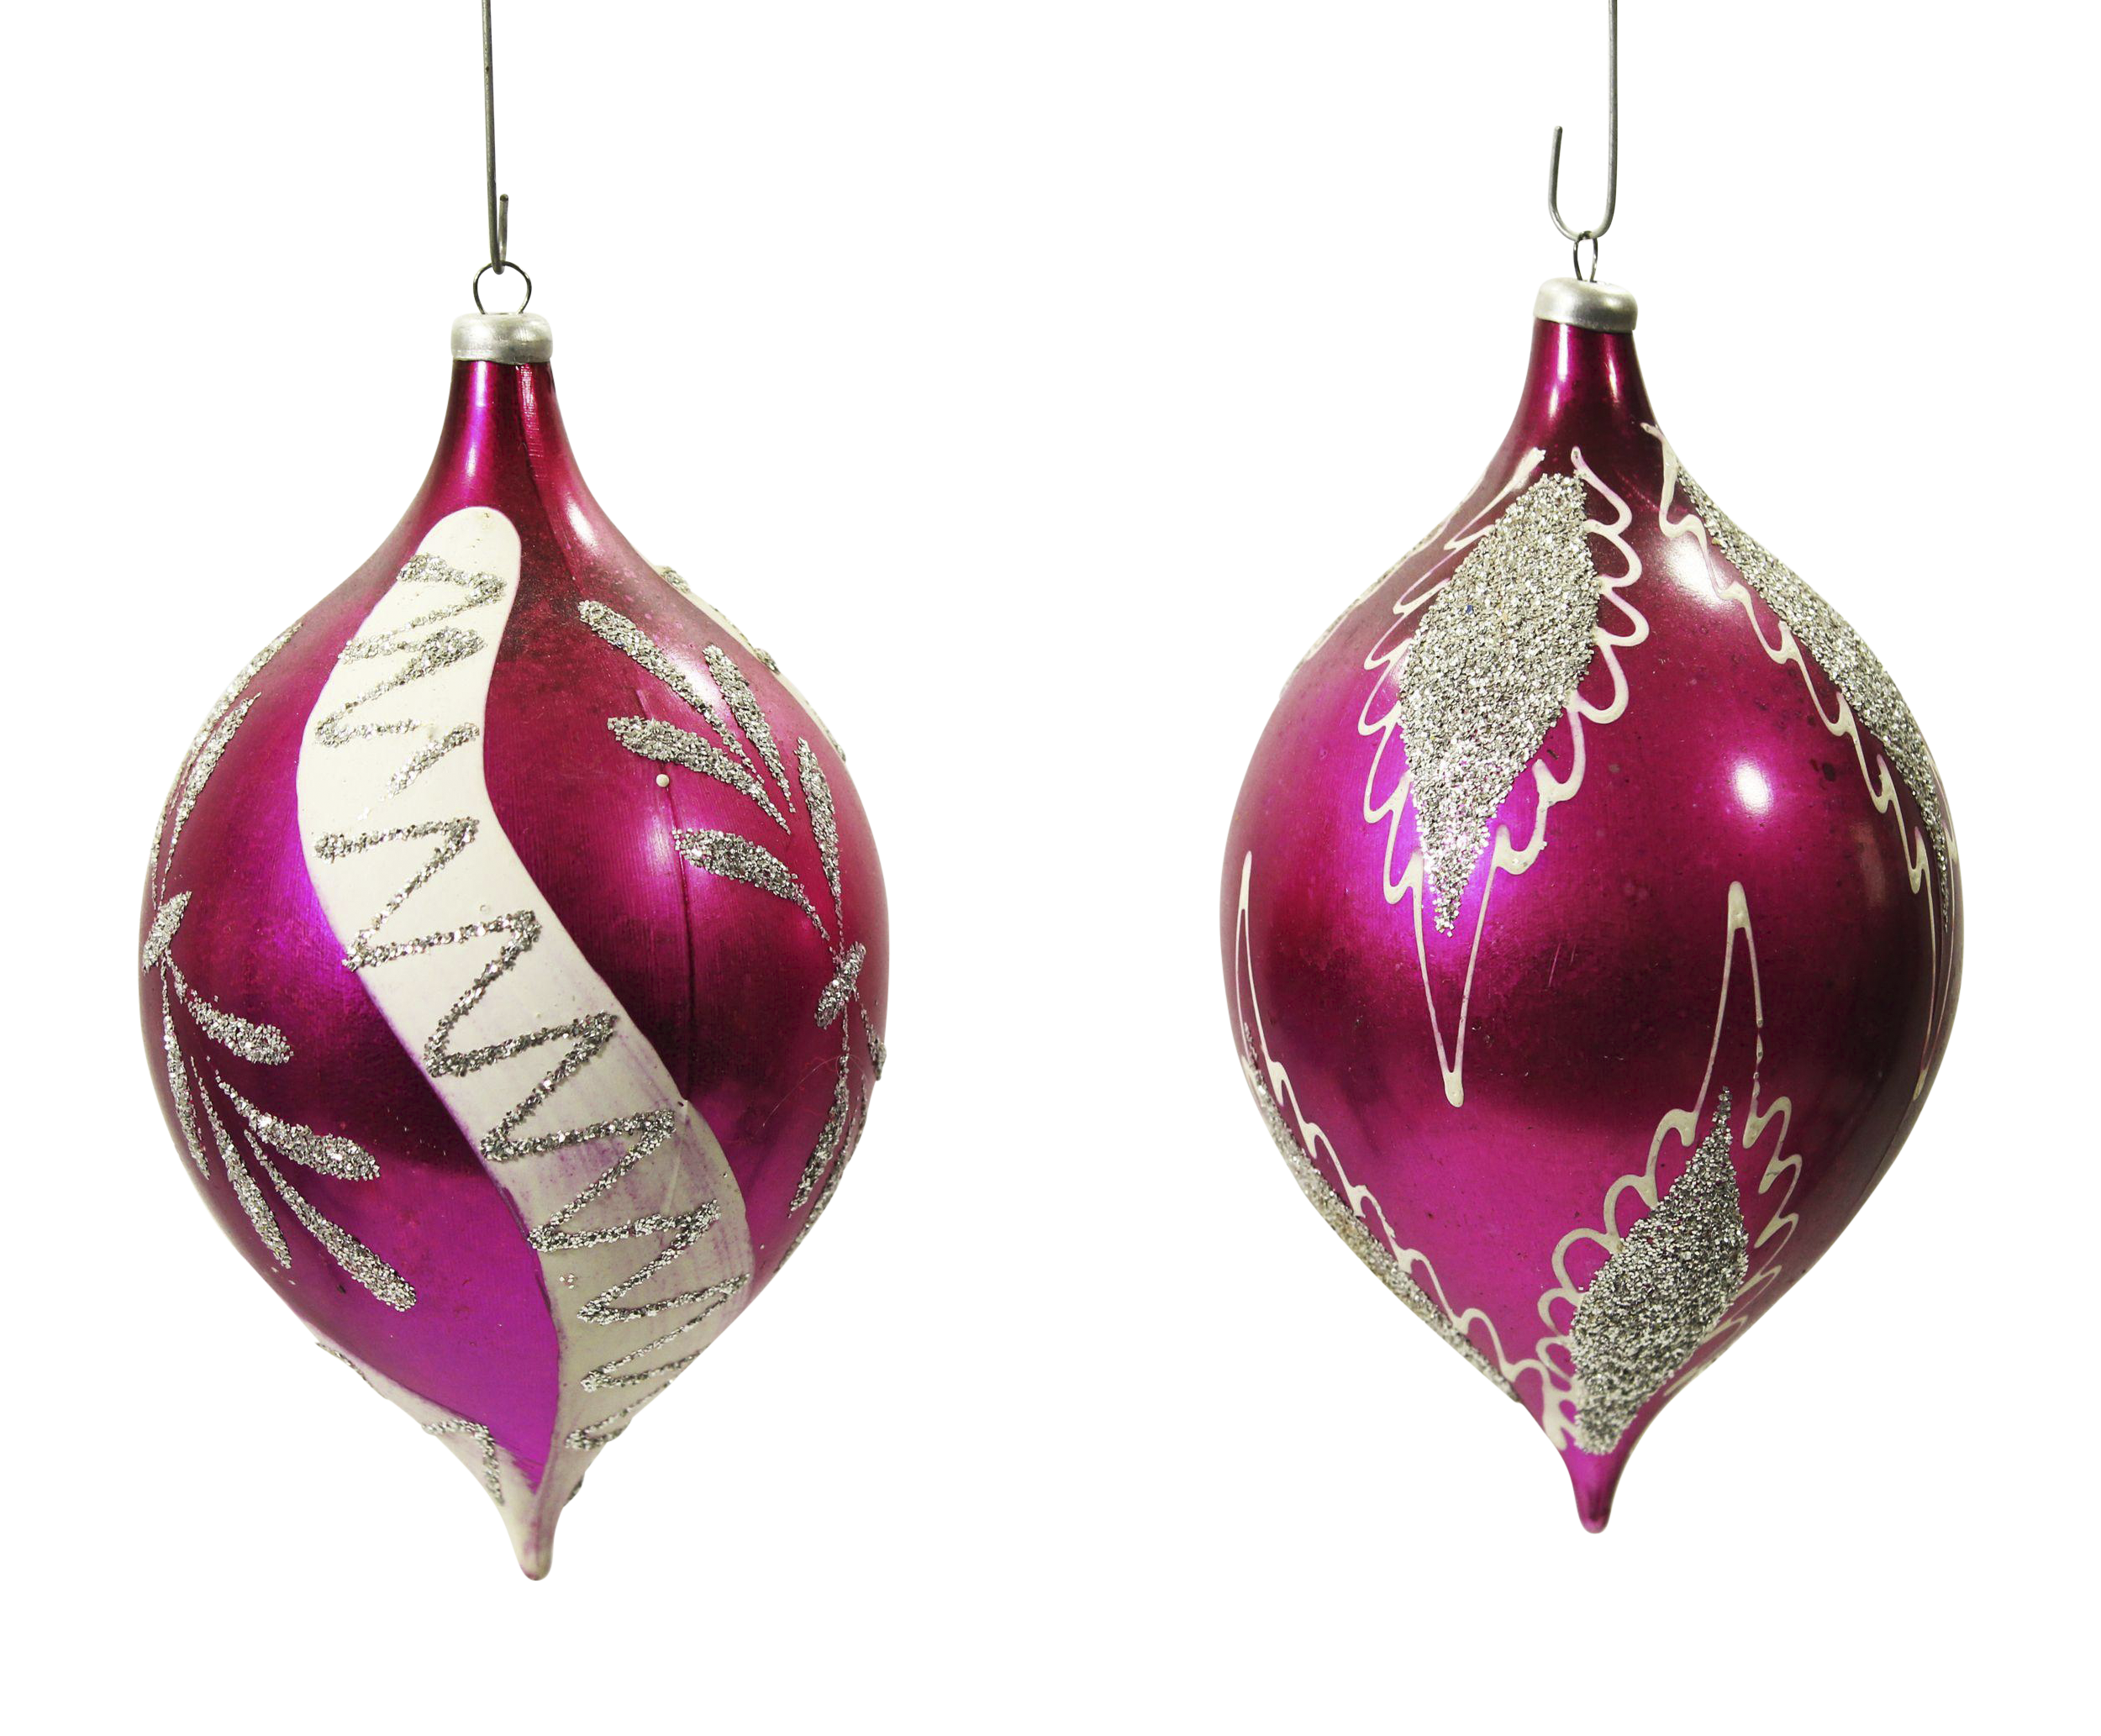 Rare Vintage Teardrop Christmas Ornaments A Pair Chairish